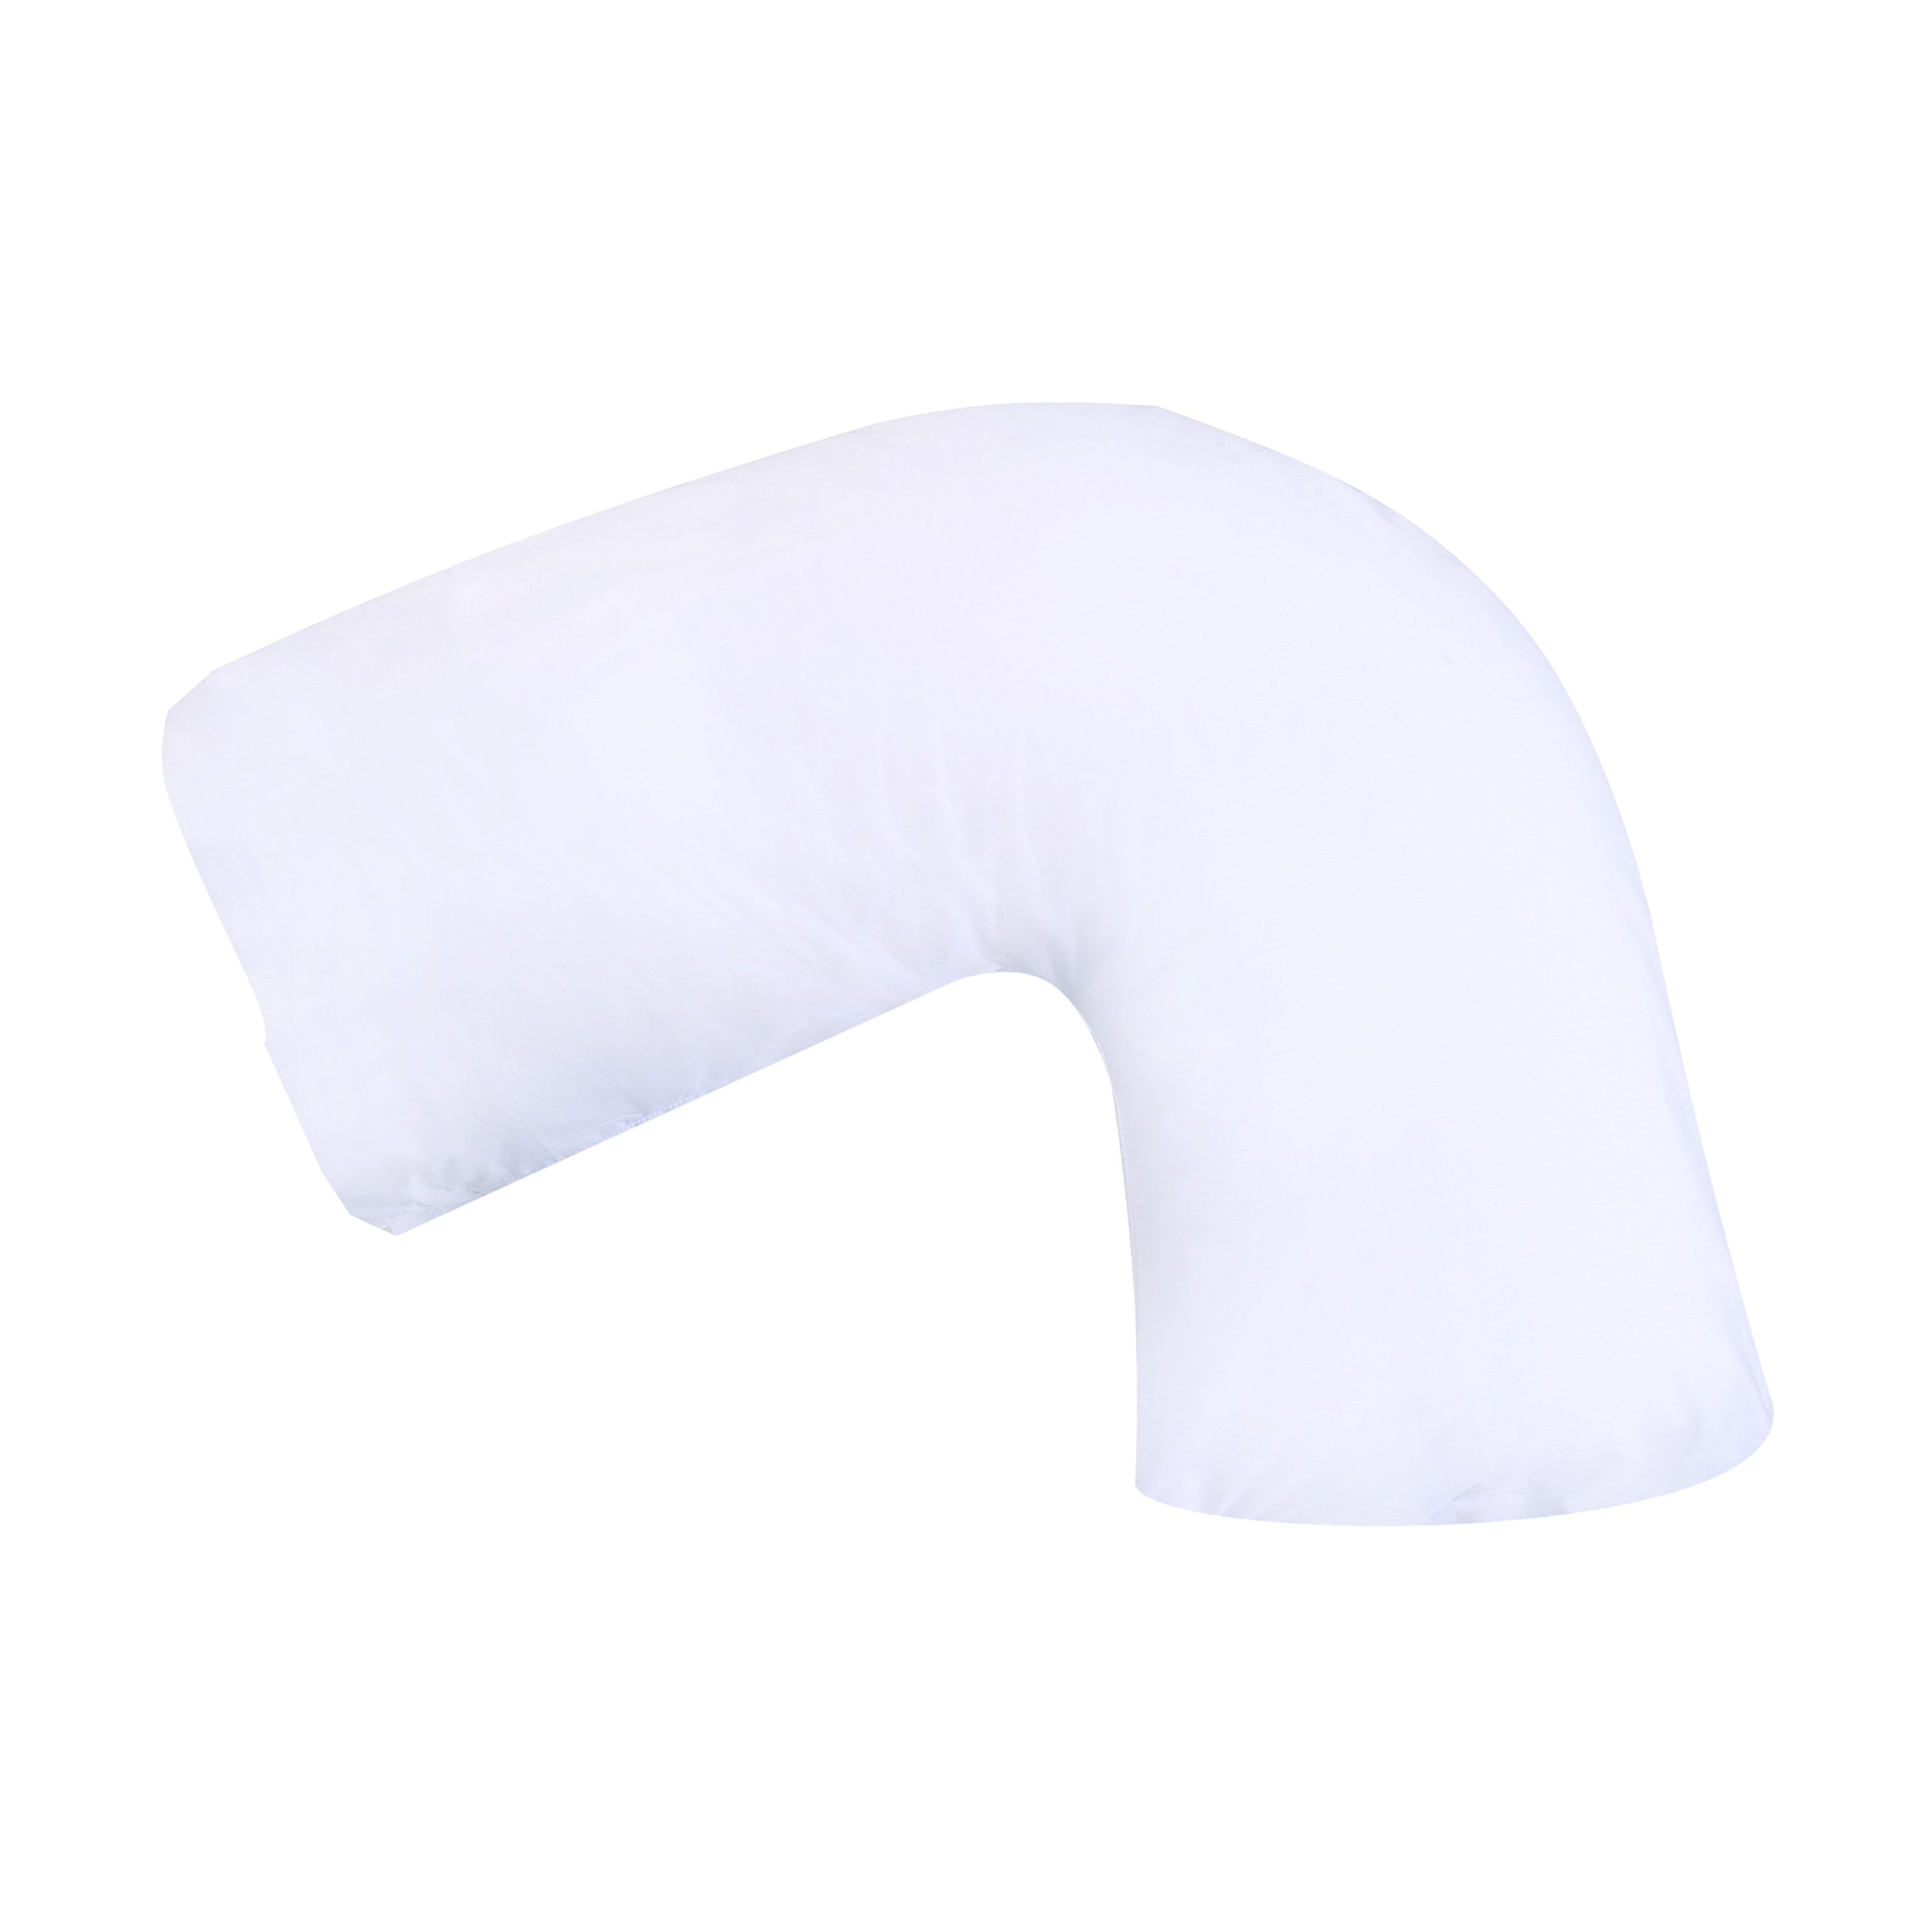 product kids support polt gel for back pillow toddler cooling sleeping side pain pillows white stomach orthopedic free neck arthritis cover hypoallergenic sleepers cervical women memory foam